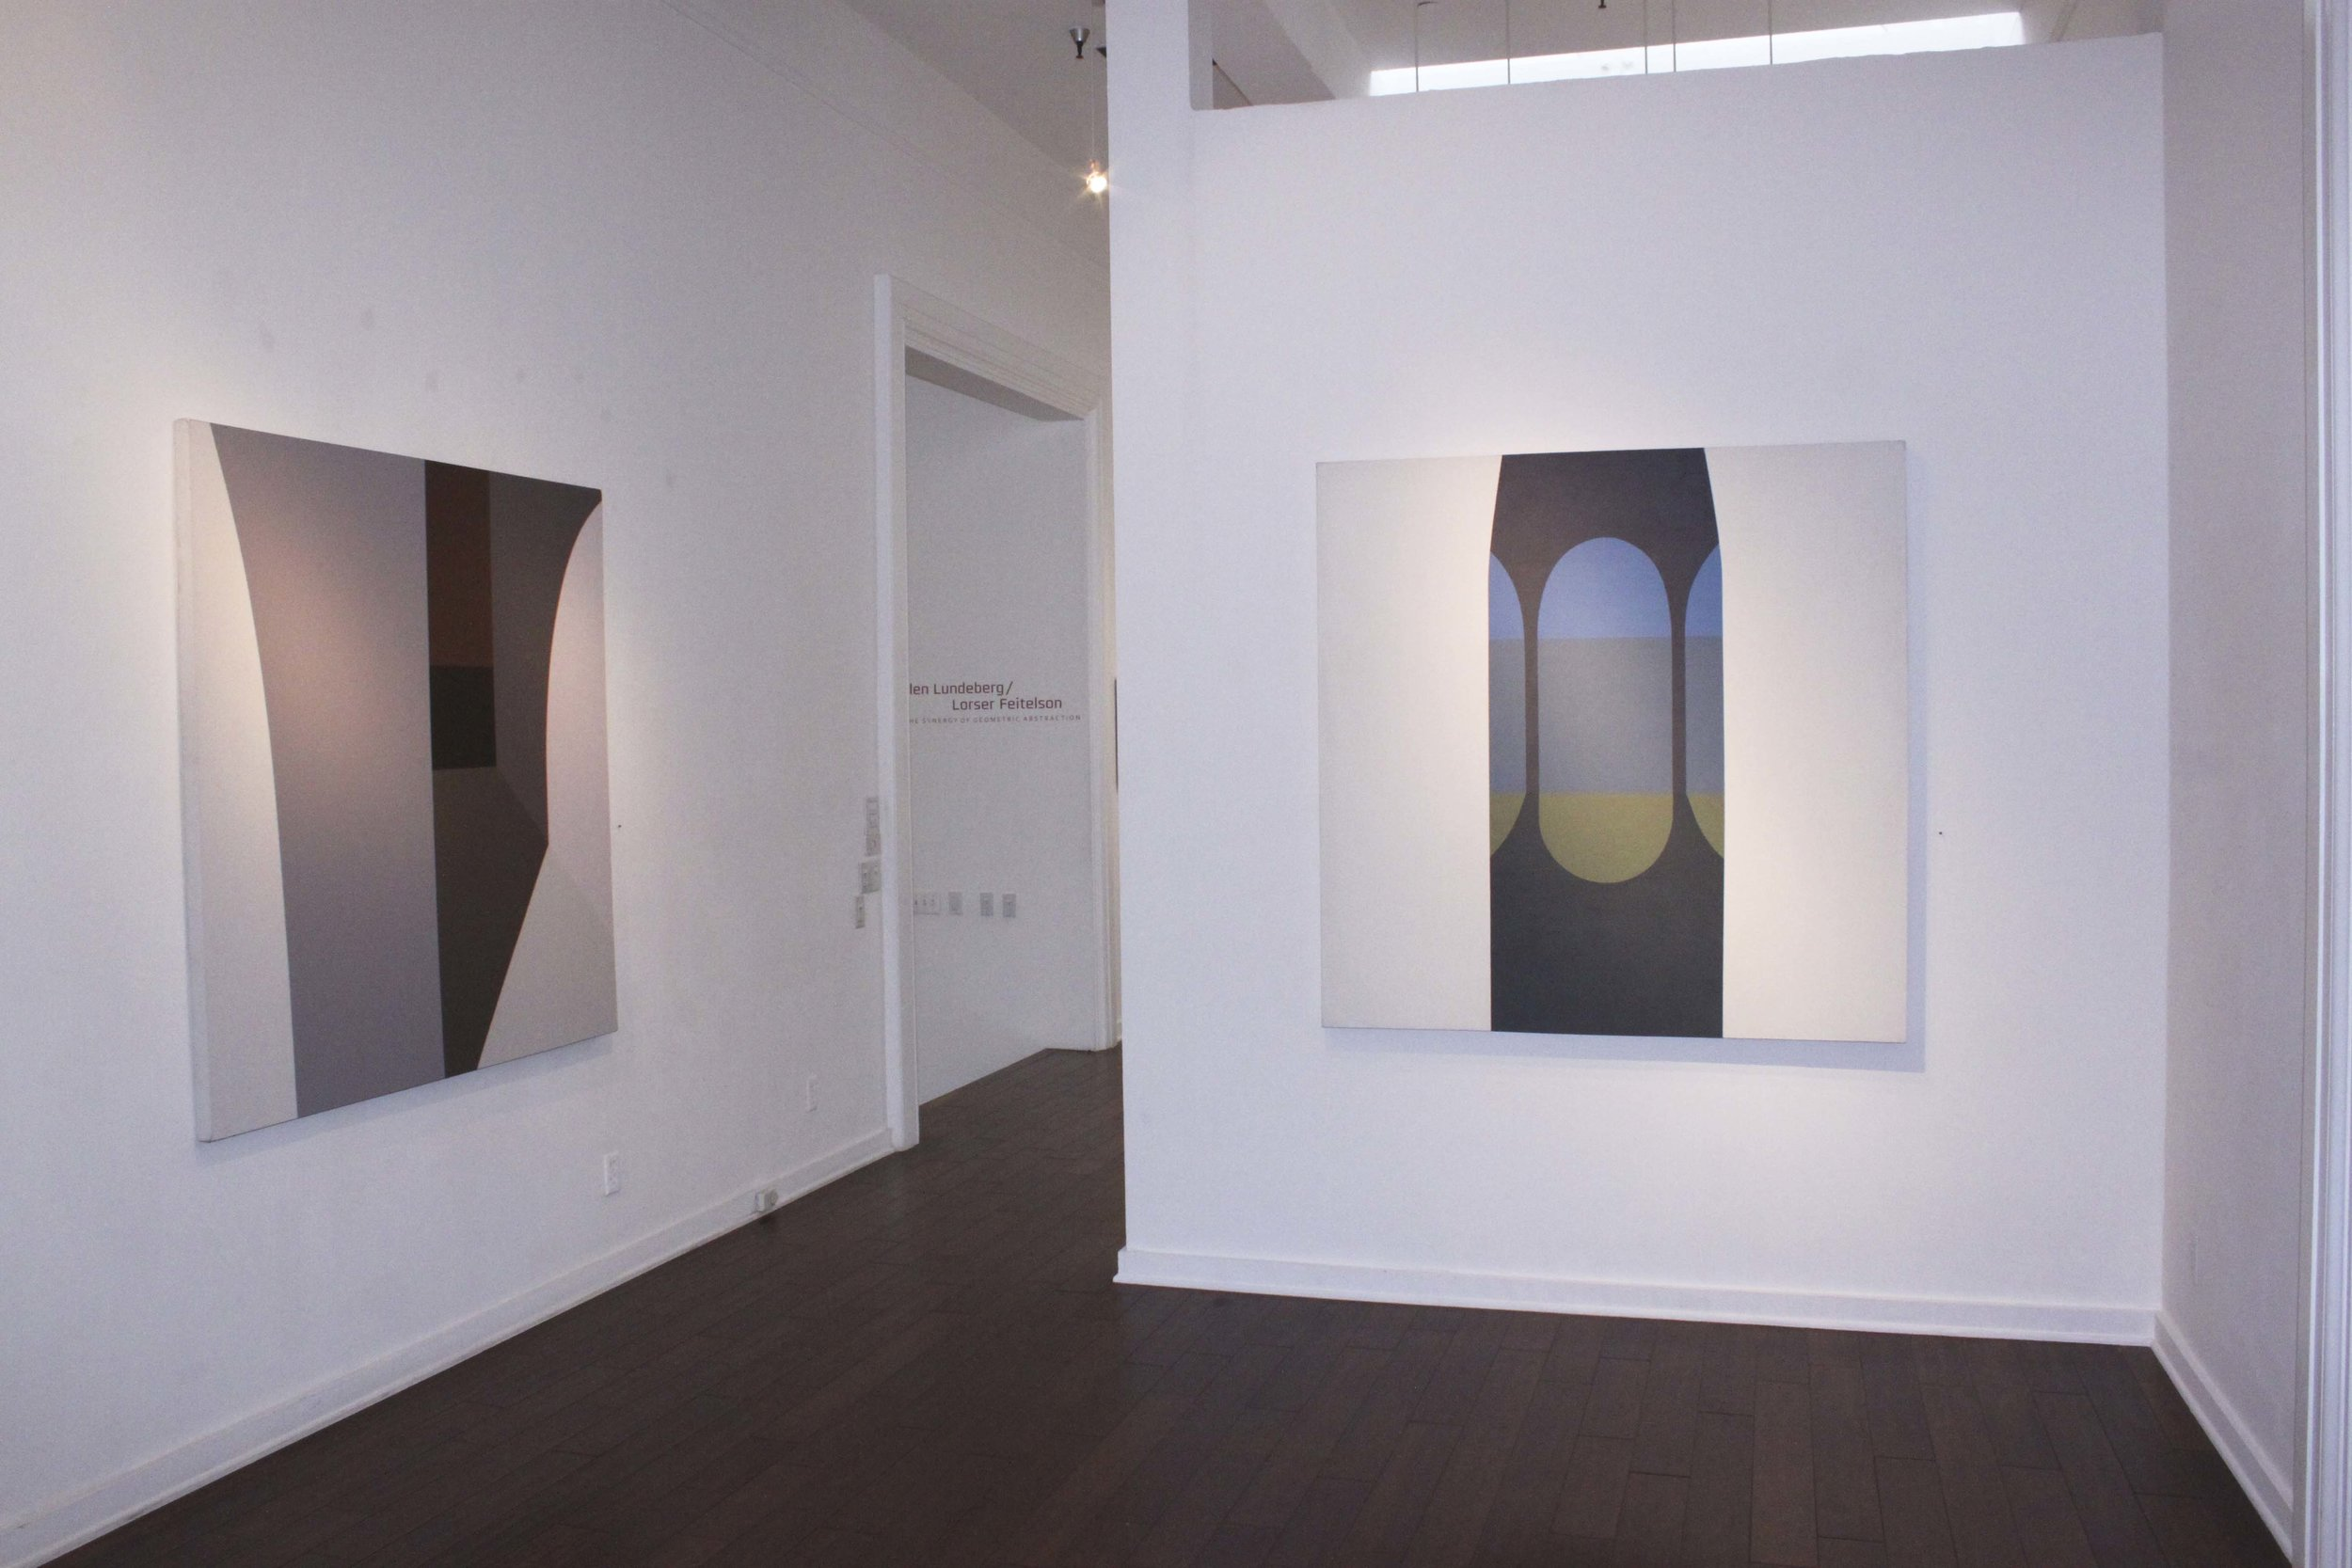 Helen Lundeberg/Lorser Feitelson and the Synergy of Geometric Abstraction